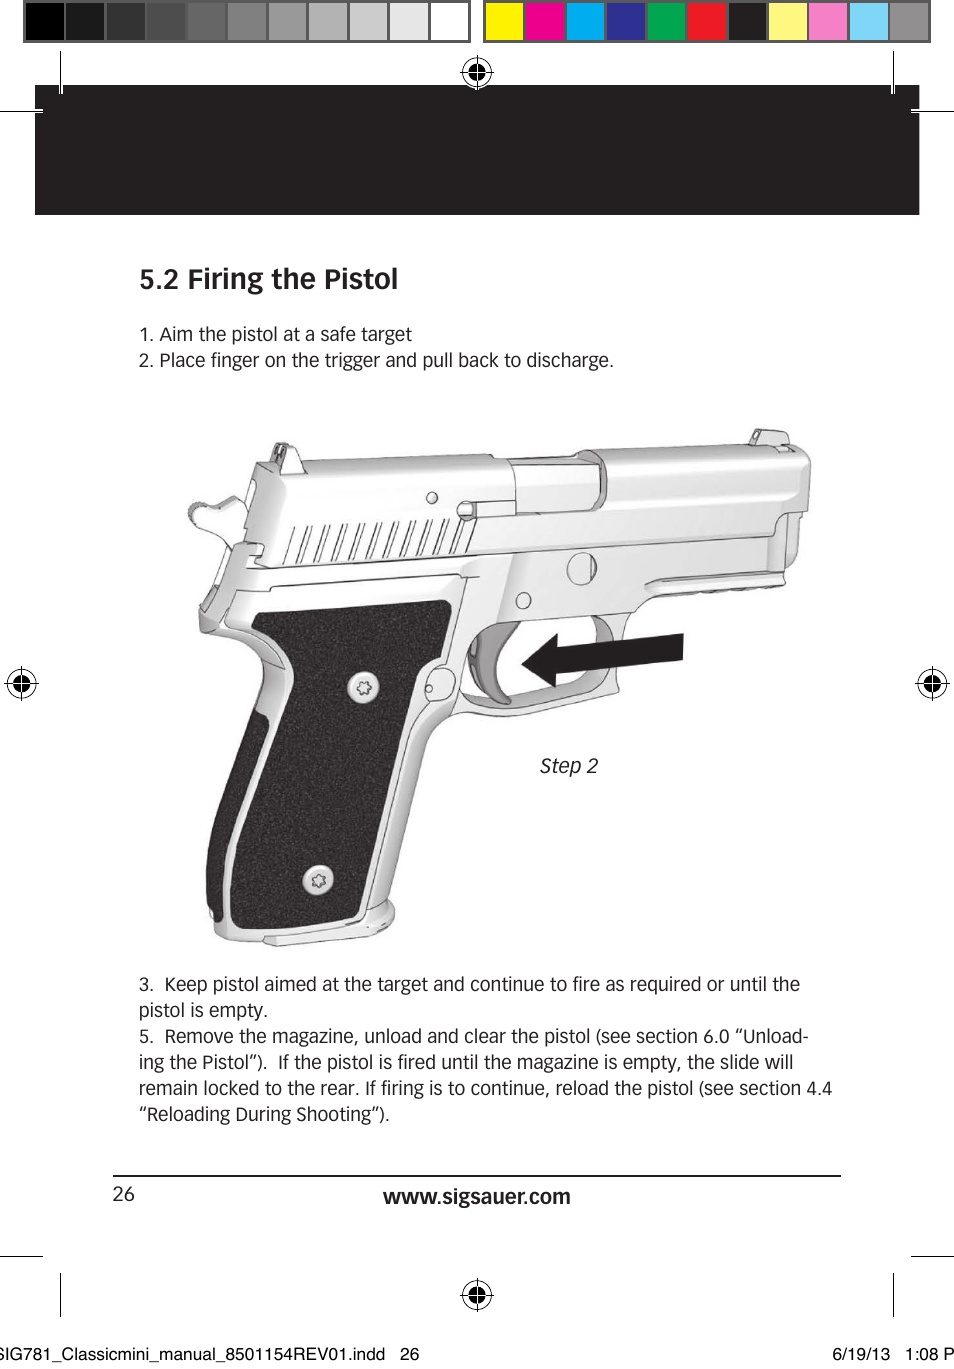 sig p229 owners manual best setting instruction guide u2022 rh ourk9 co sig sauer owners manual sig sauer p320 user manual